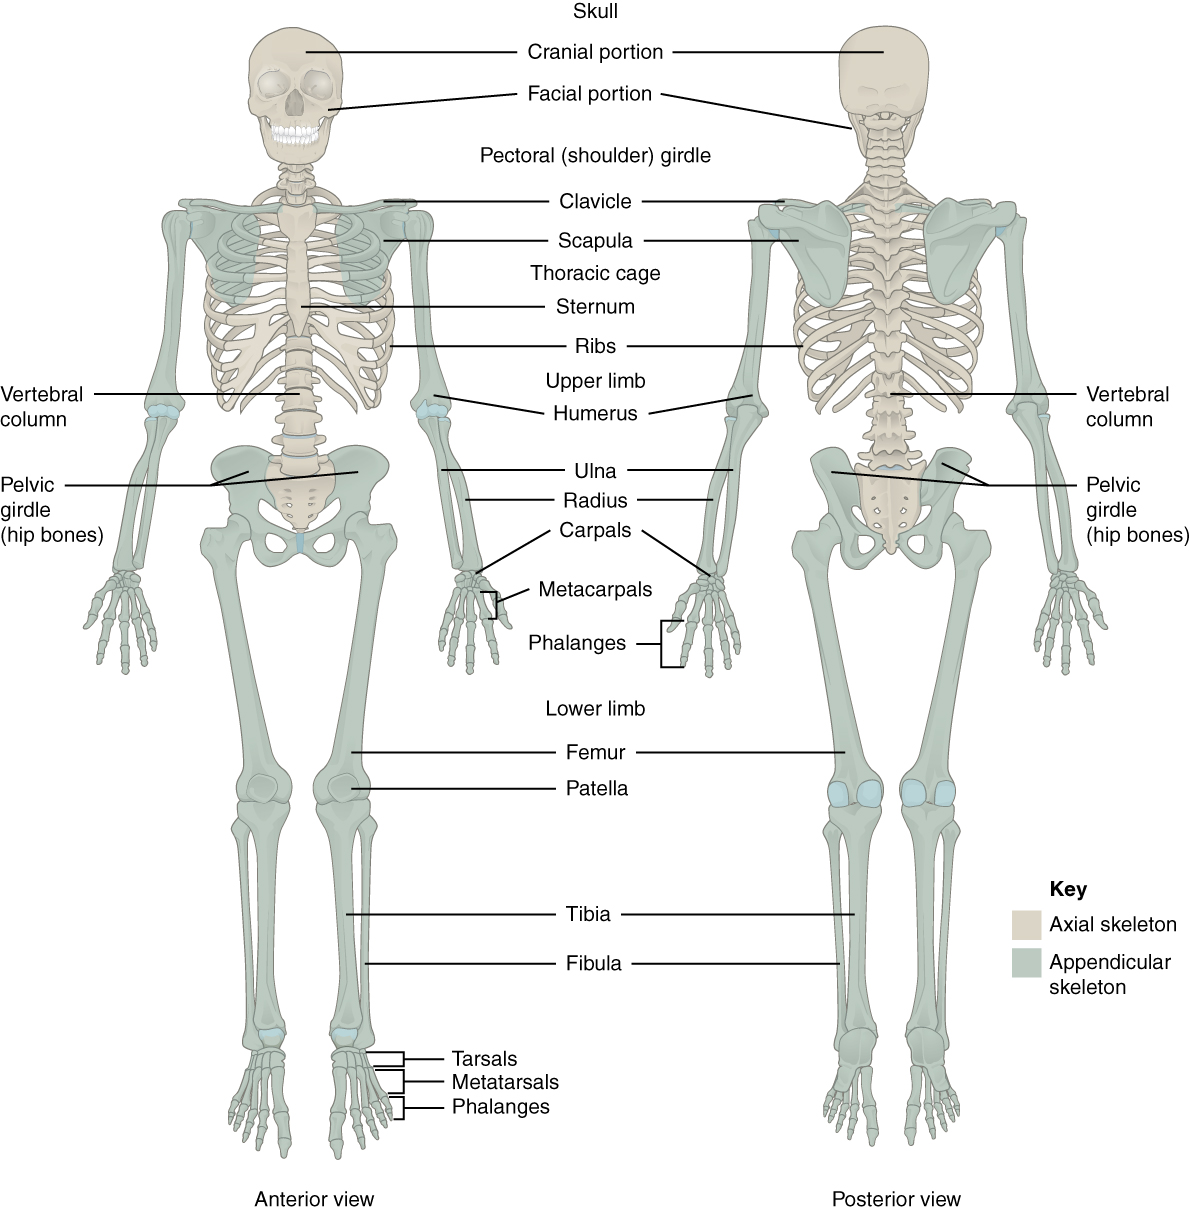 This figure shows the human skeleton. The left panel shows the anterior view, and the right panel shows the posterior view.